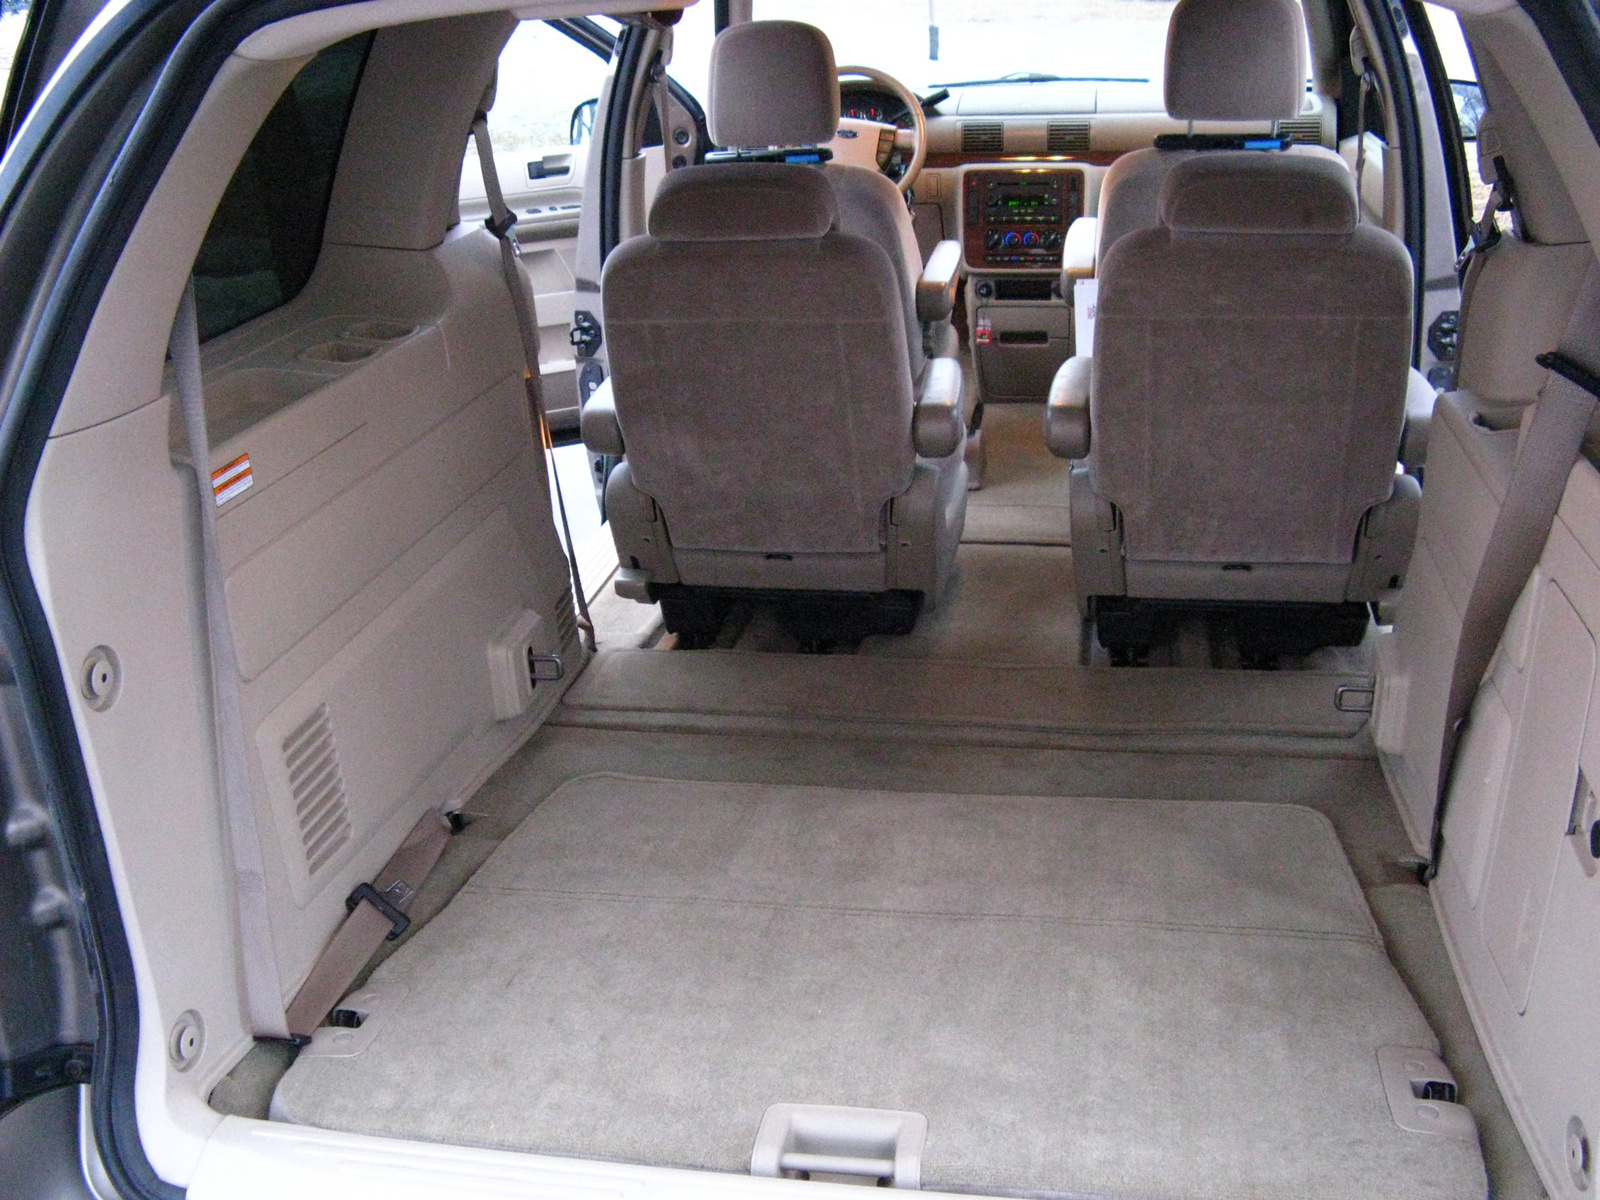 Ford Freestar 2005 Pictures 10